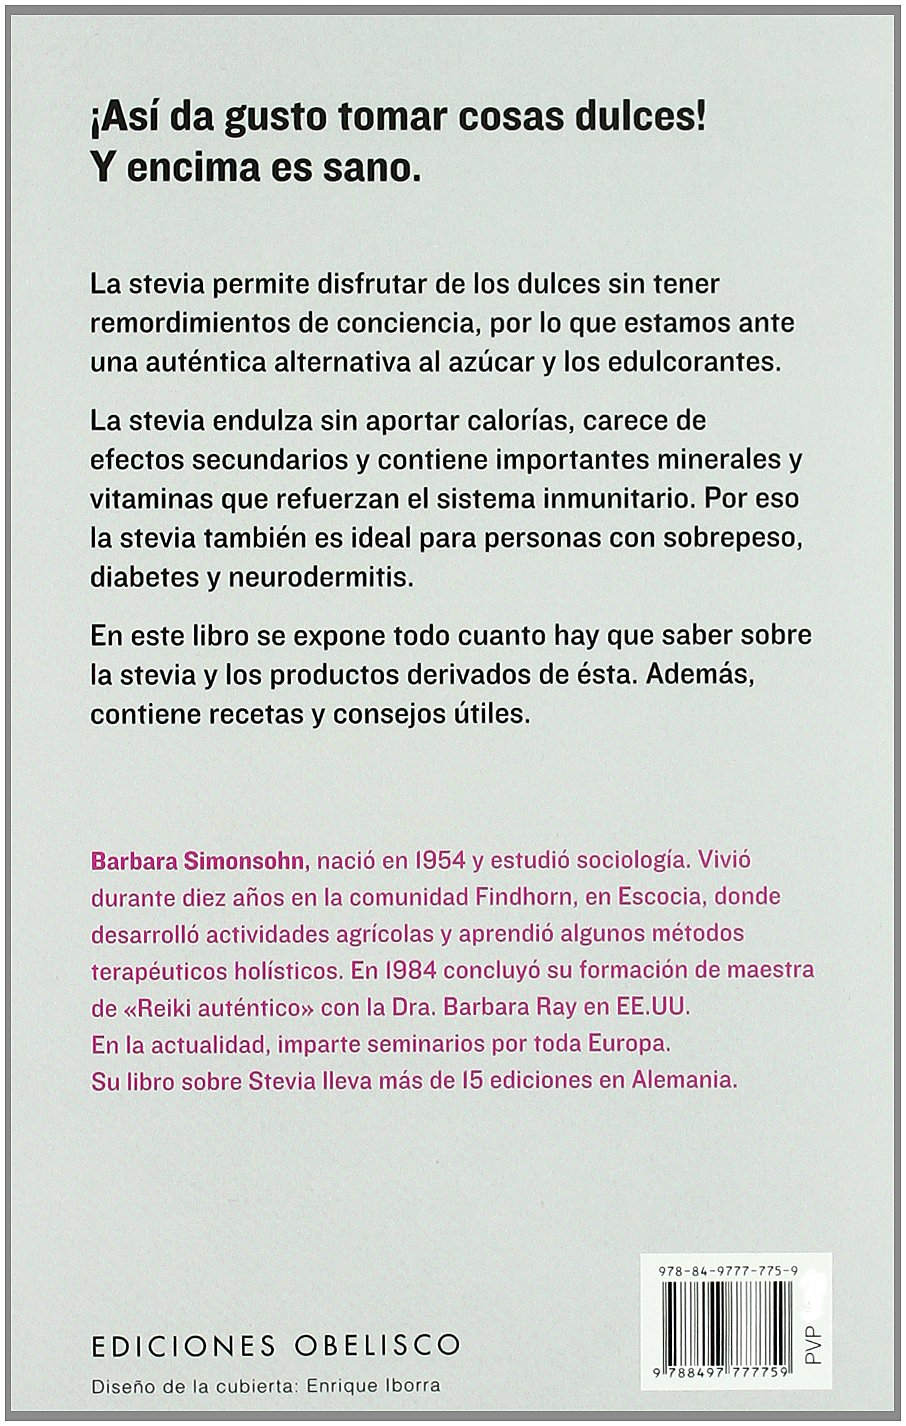 Descubre la stevia (Spanish Edition): Barbara Simonsohn: 9788497777759: Amazon.com: Books